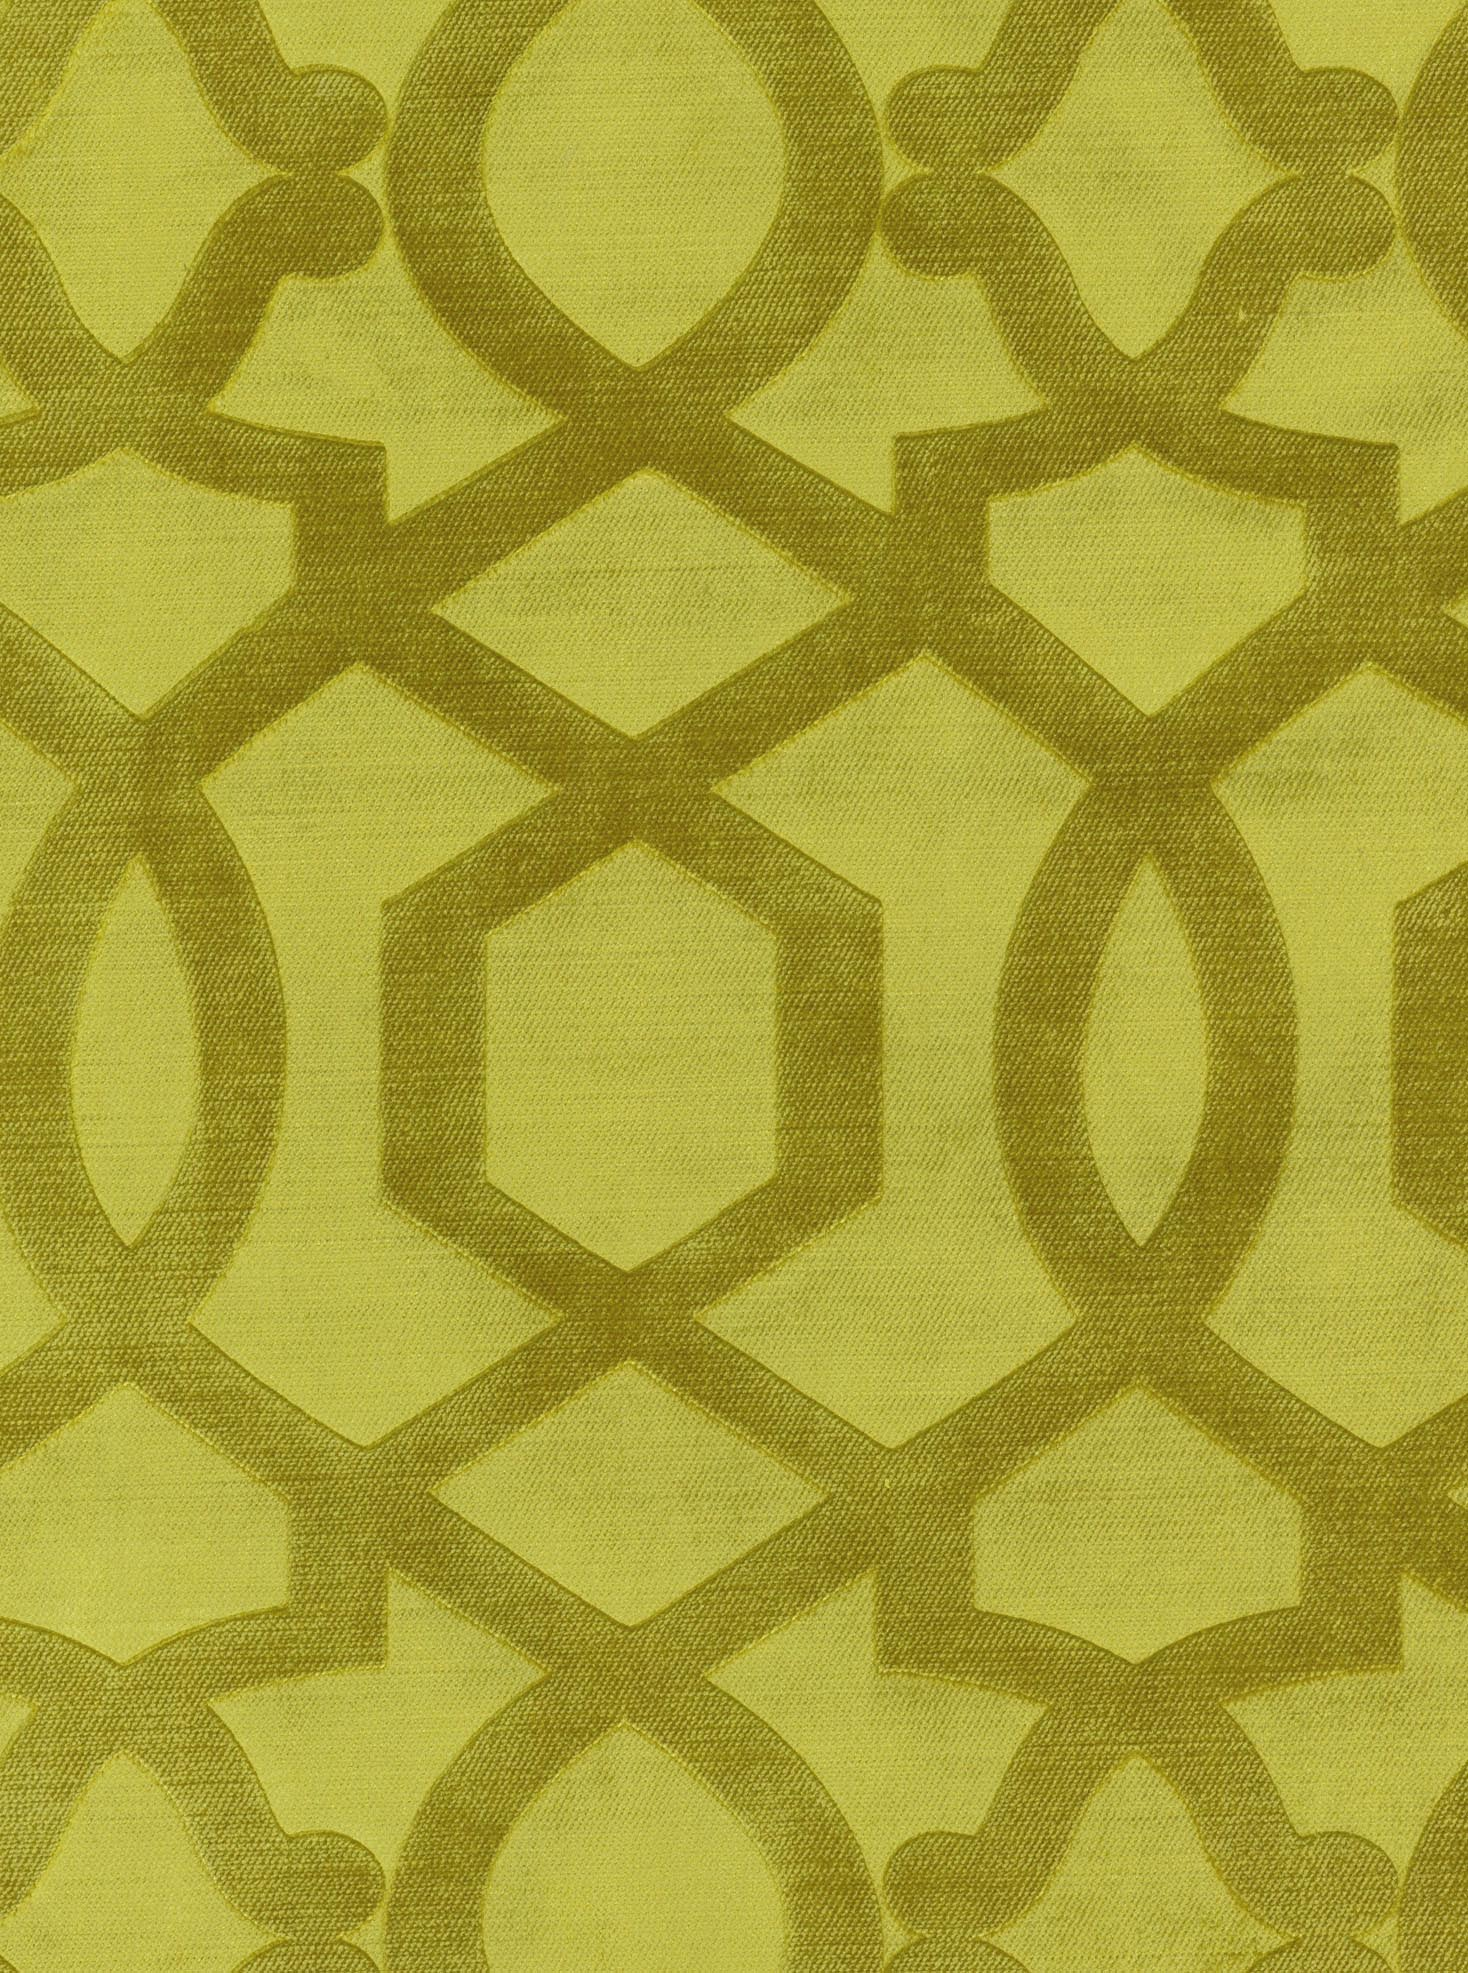 "Home Decor 8""x8"" Fabric Swatch-IMAN Home Sultana Velvet Citrine"